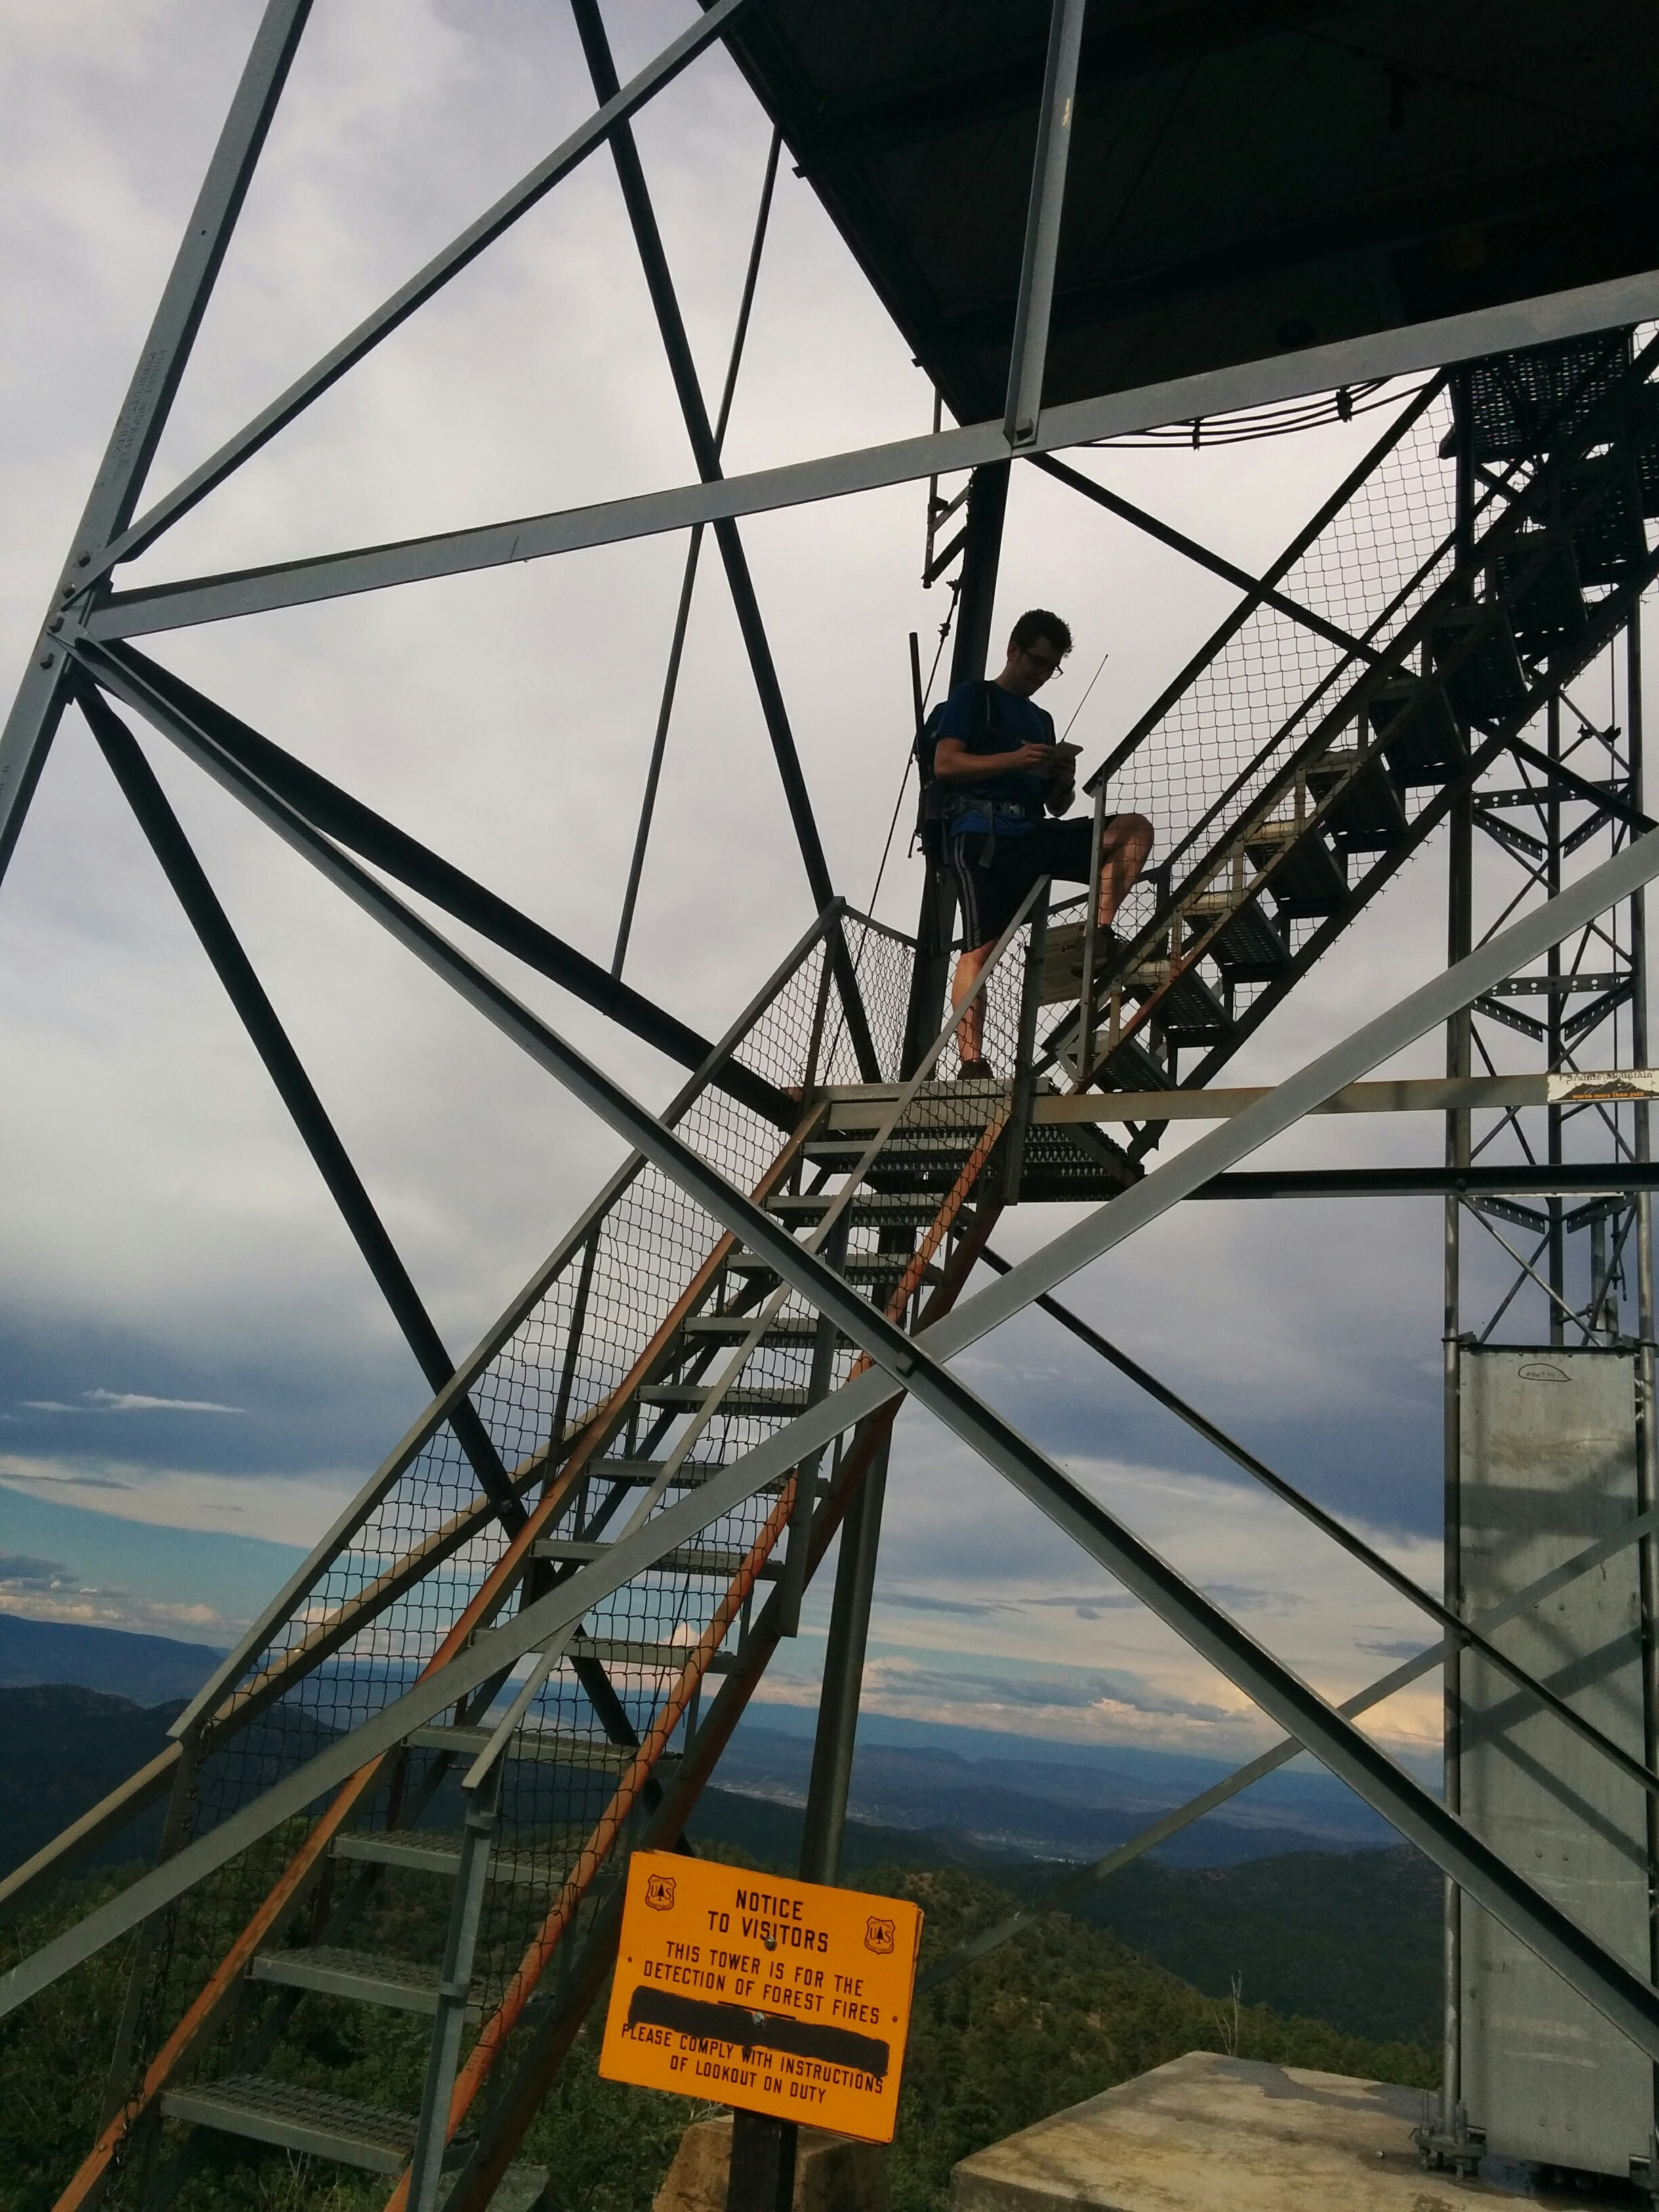 Activating Spruce Mountain on the stairs up to the fire lookout.